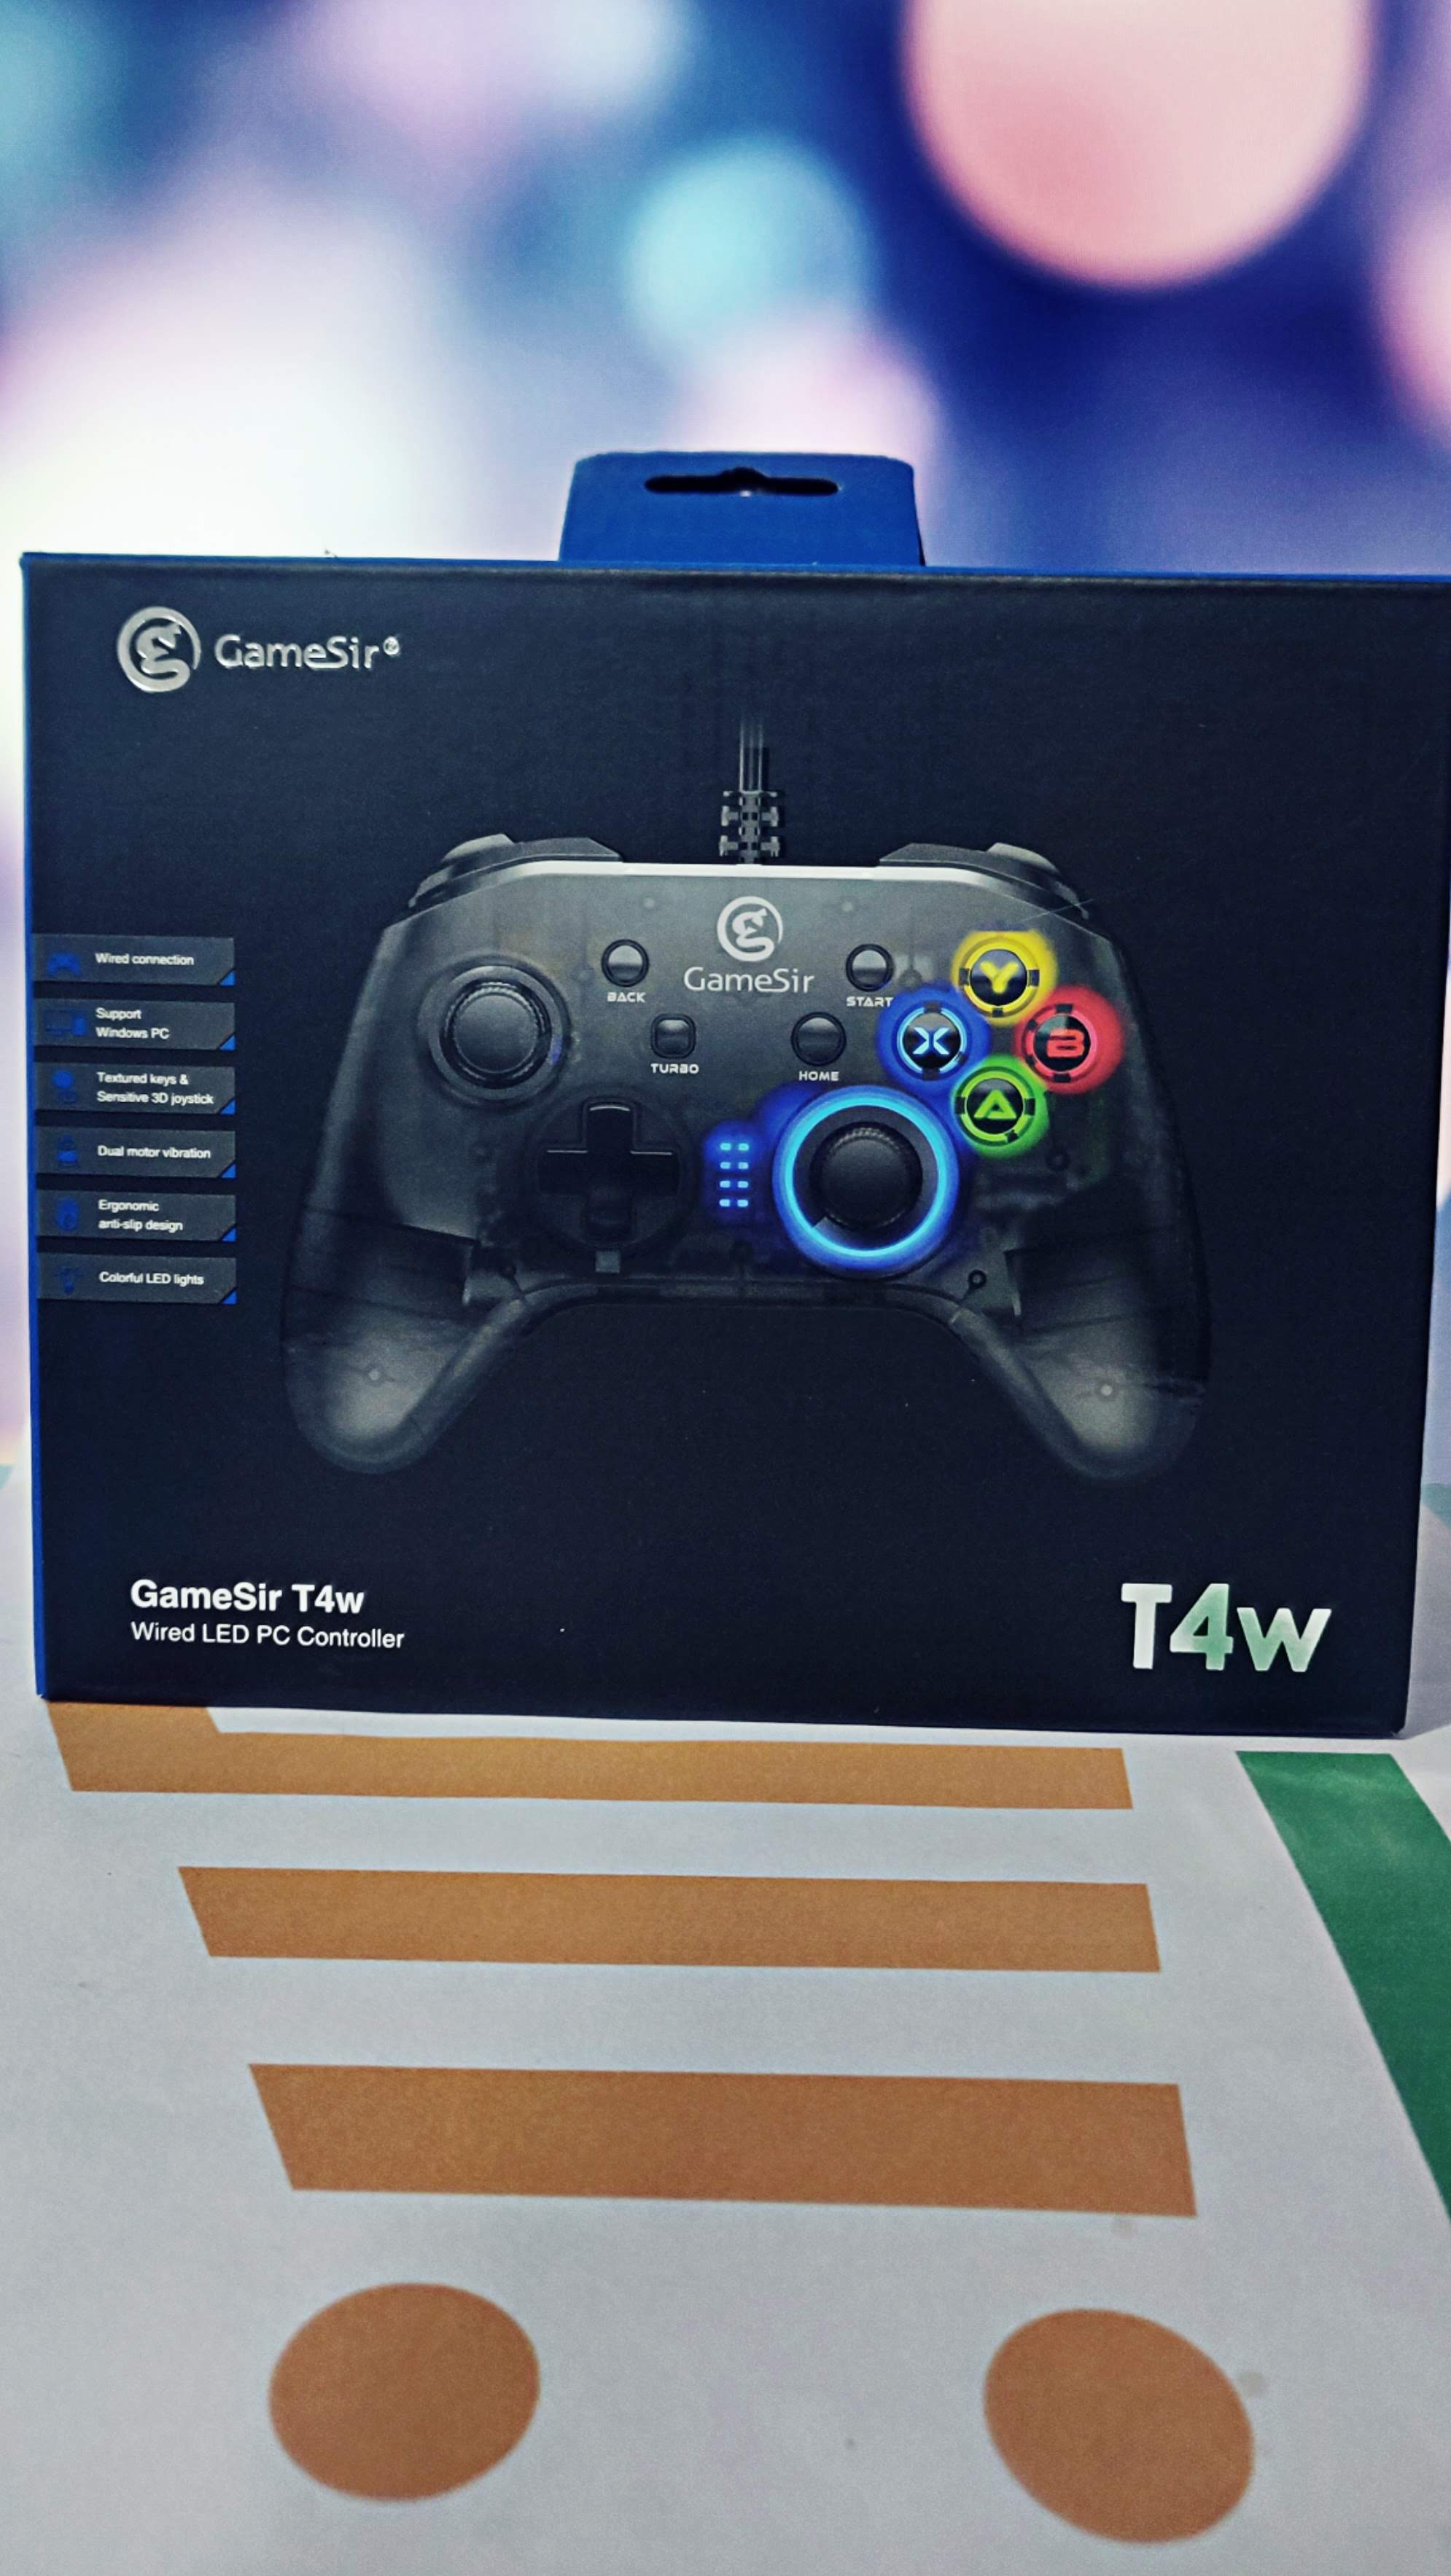 Gamesir t4w usb wired game controller gamepad with vibration and turbo function joystick for windows 7/8/10